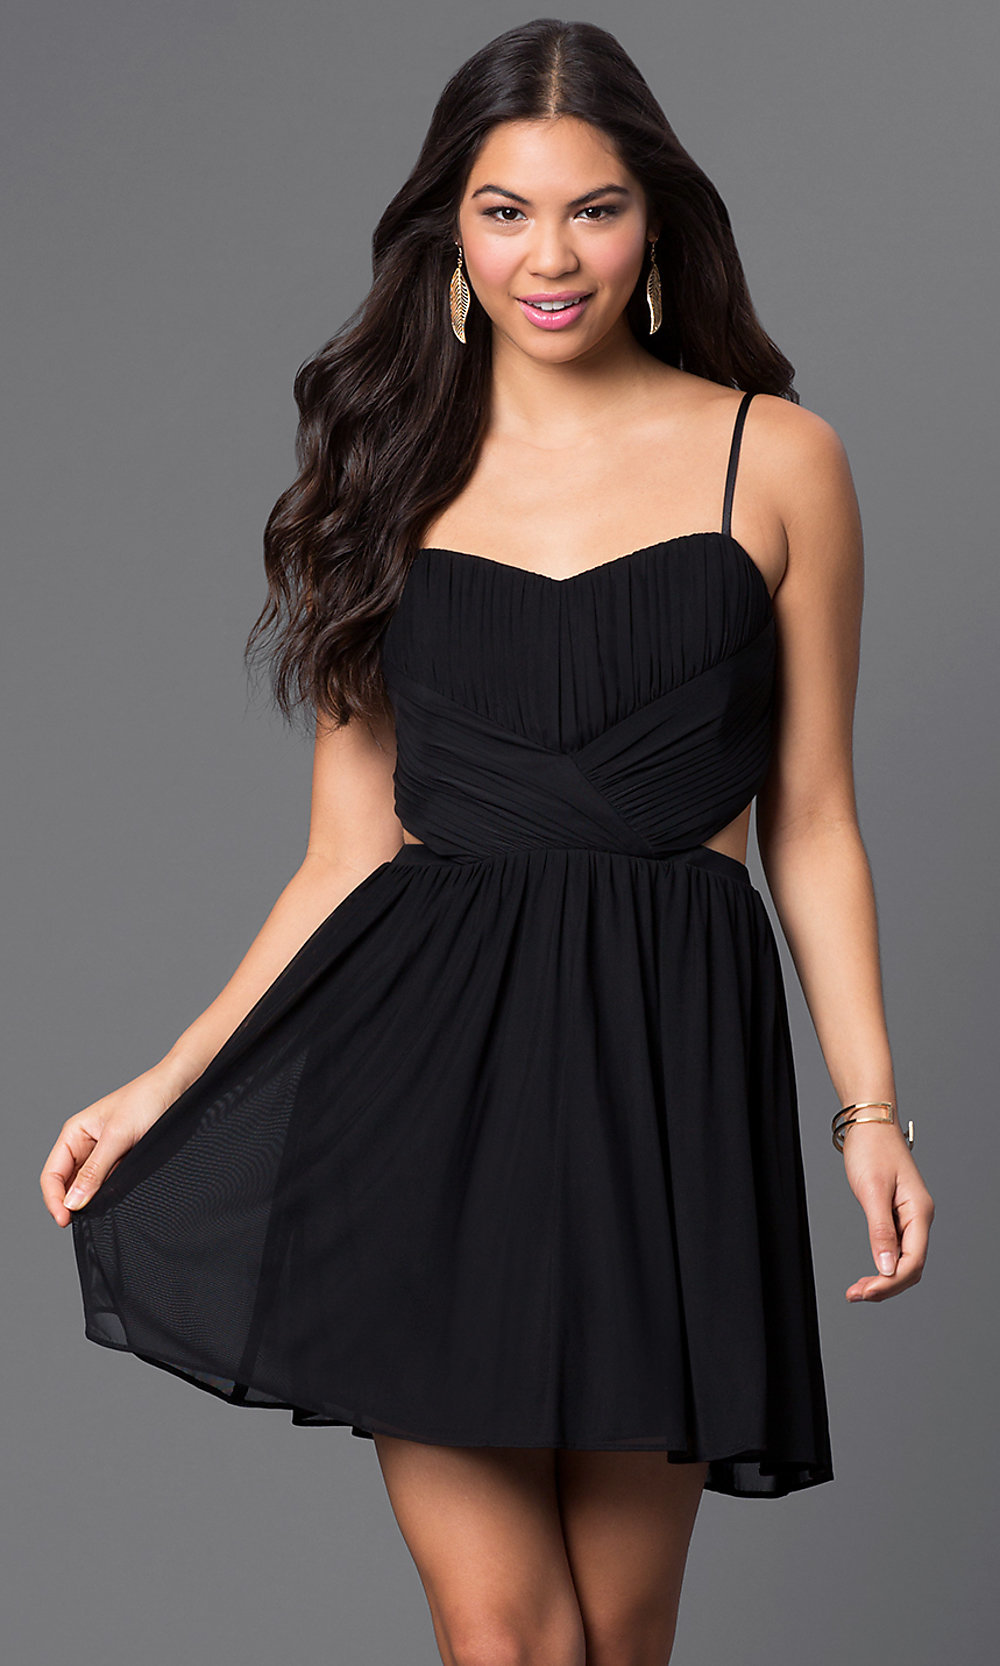 Short Spahgetti Strap Dress With Cut Outs Promgirl